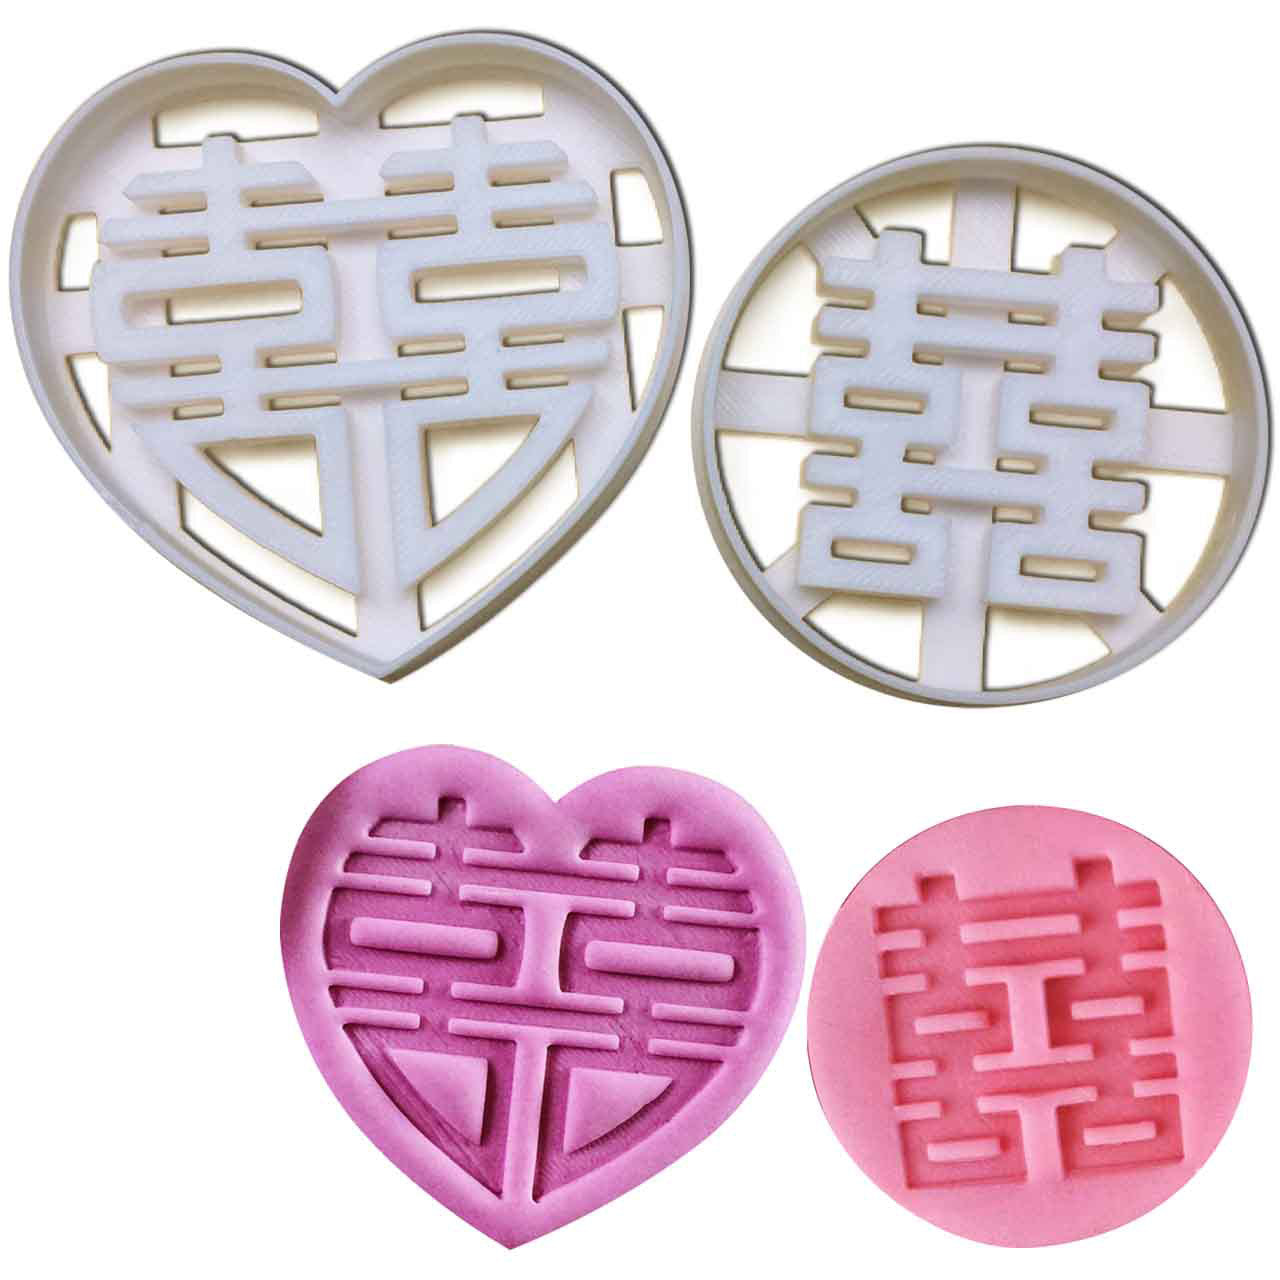 set of 2 Chinese Wedding cookie cutters (Heart outline and circular outline)